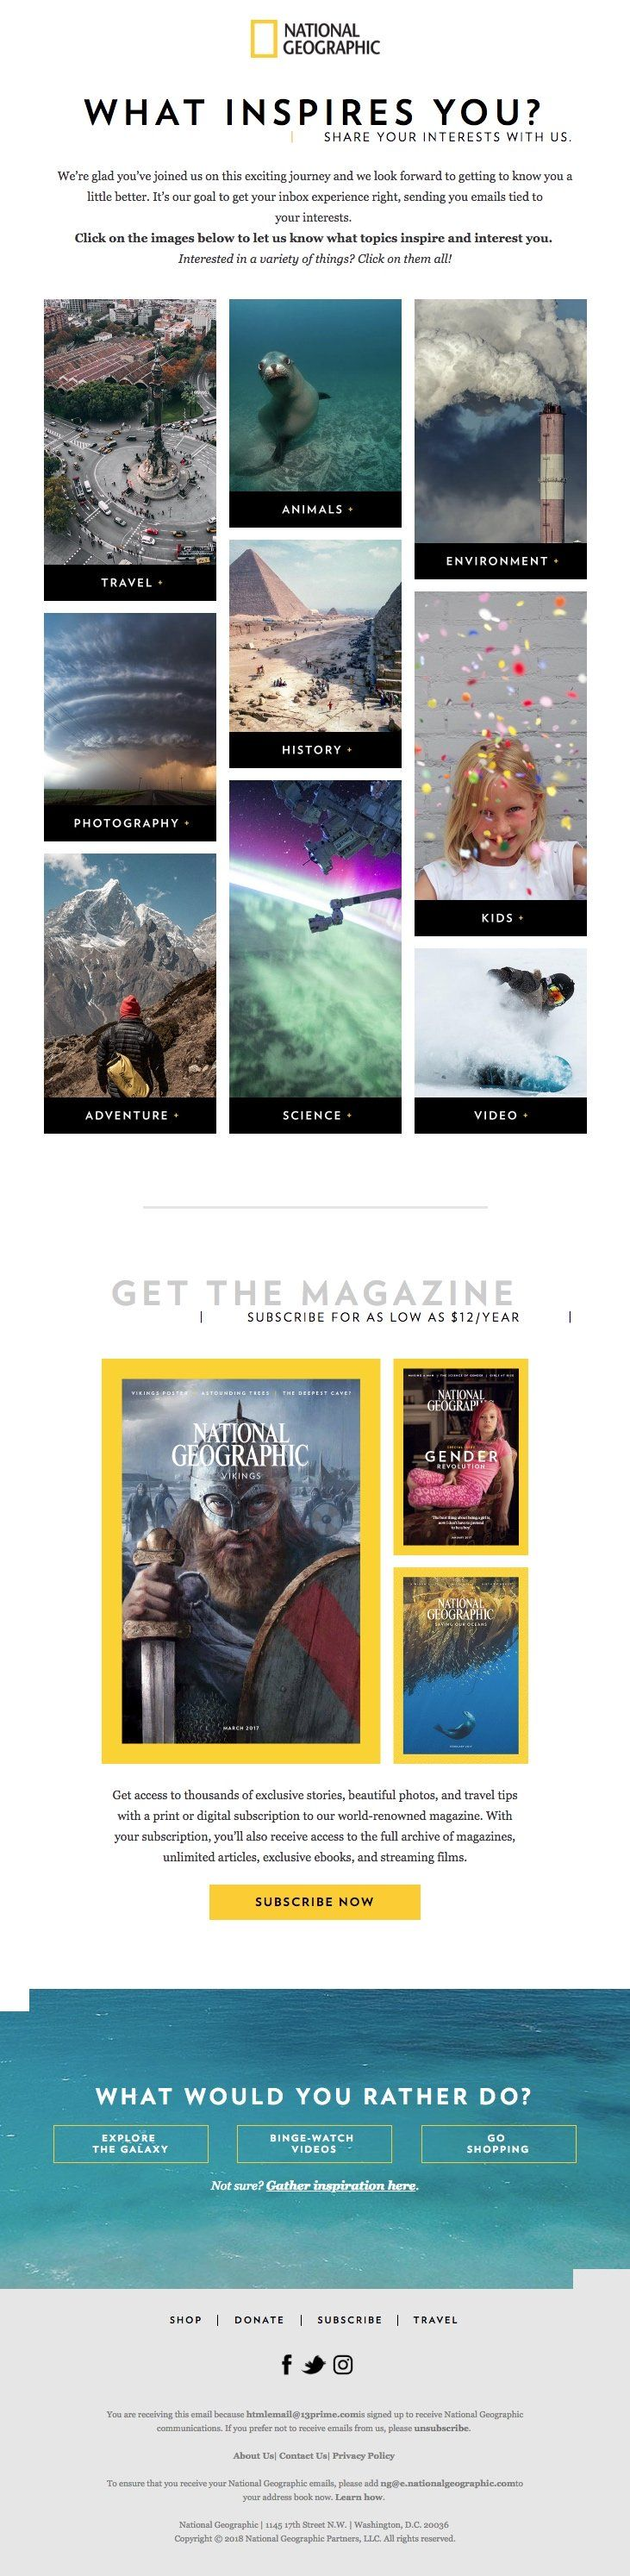 National Geographic Html Email Gallery What Inspires You Email Design Inspiration National Geographic